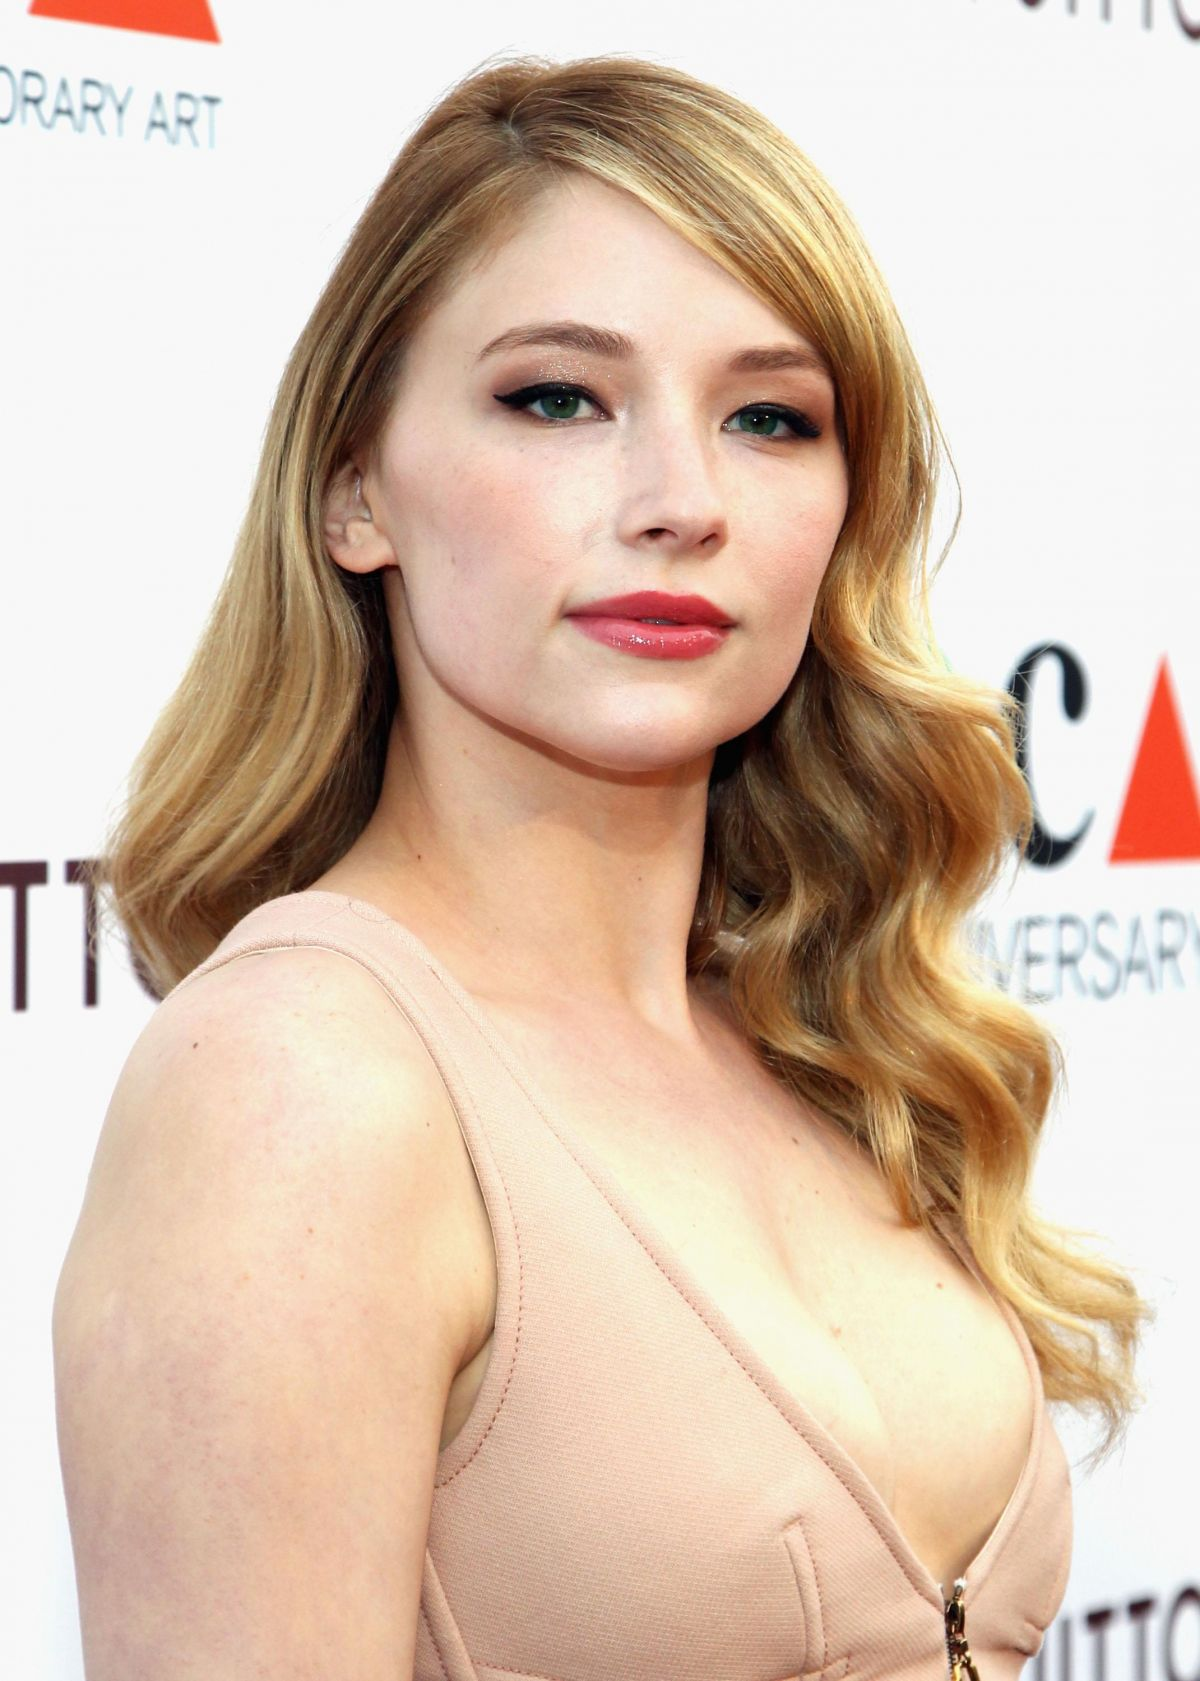 Haley Bennett At MOCA